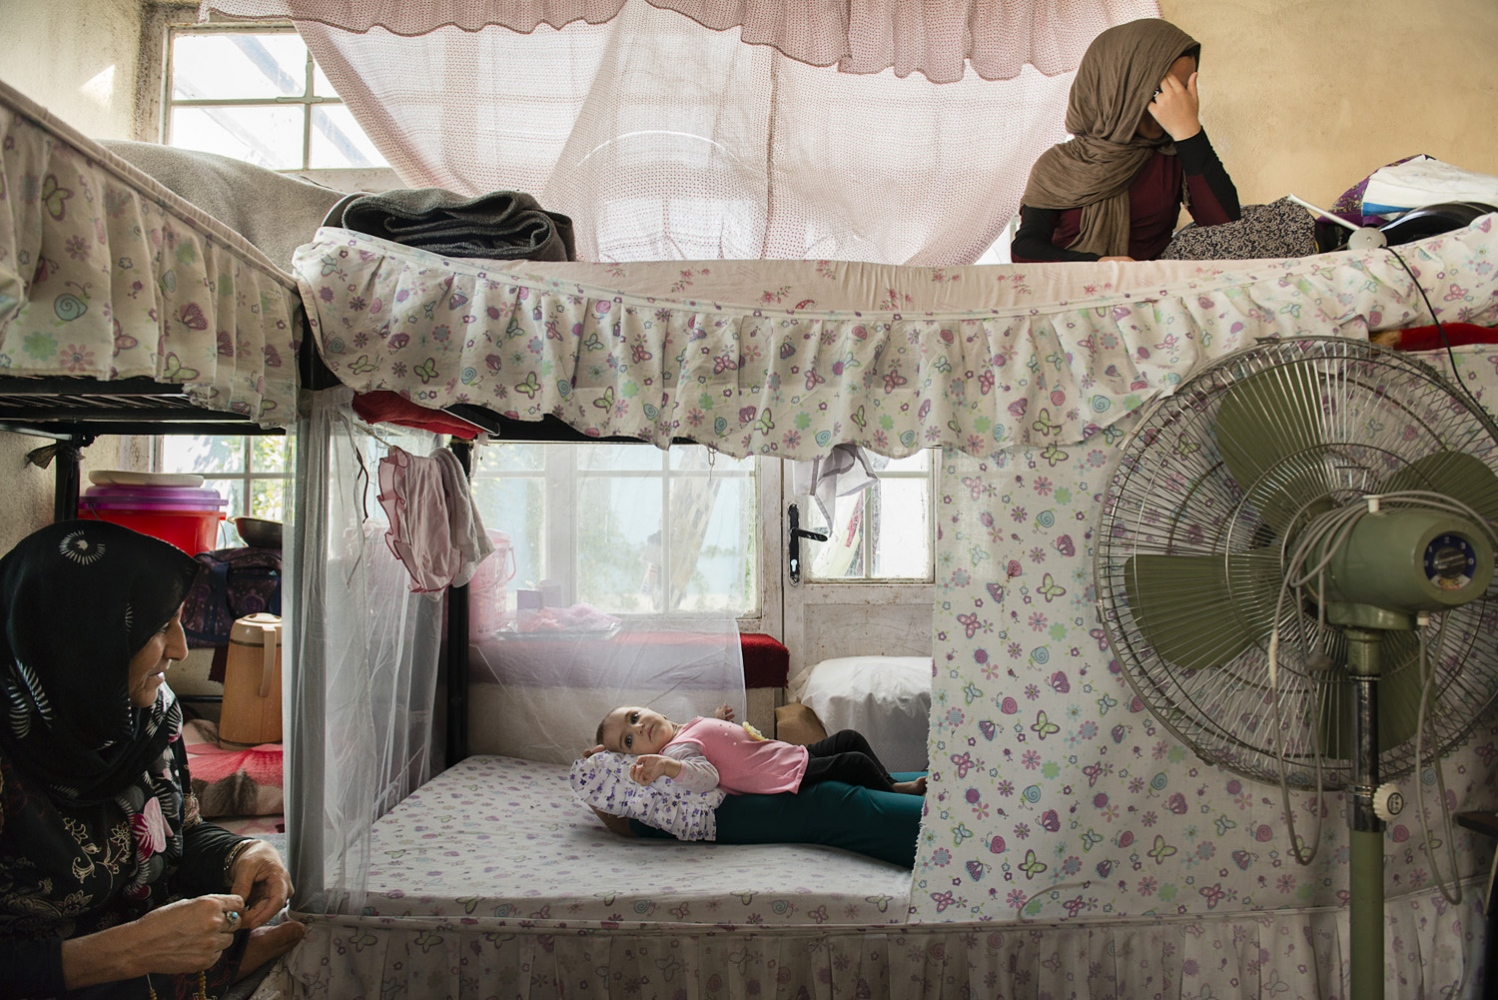 HERAT, AFGHANISTAN | 2016-09-04 | Wahida (20), who chose not to reveal her face, sits behind the curtain on her bed inside the female ward of Herat Prison. She was arrested when she was 7 months pregnant, convicted for helping her sister-in-law to murder her husband. Her daughter, Mahtab (10-month-old) was born inside the prison. Her biggest fear is the future when her sentence is over and she has to face the outside world on her own.